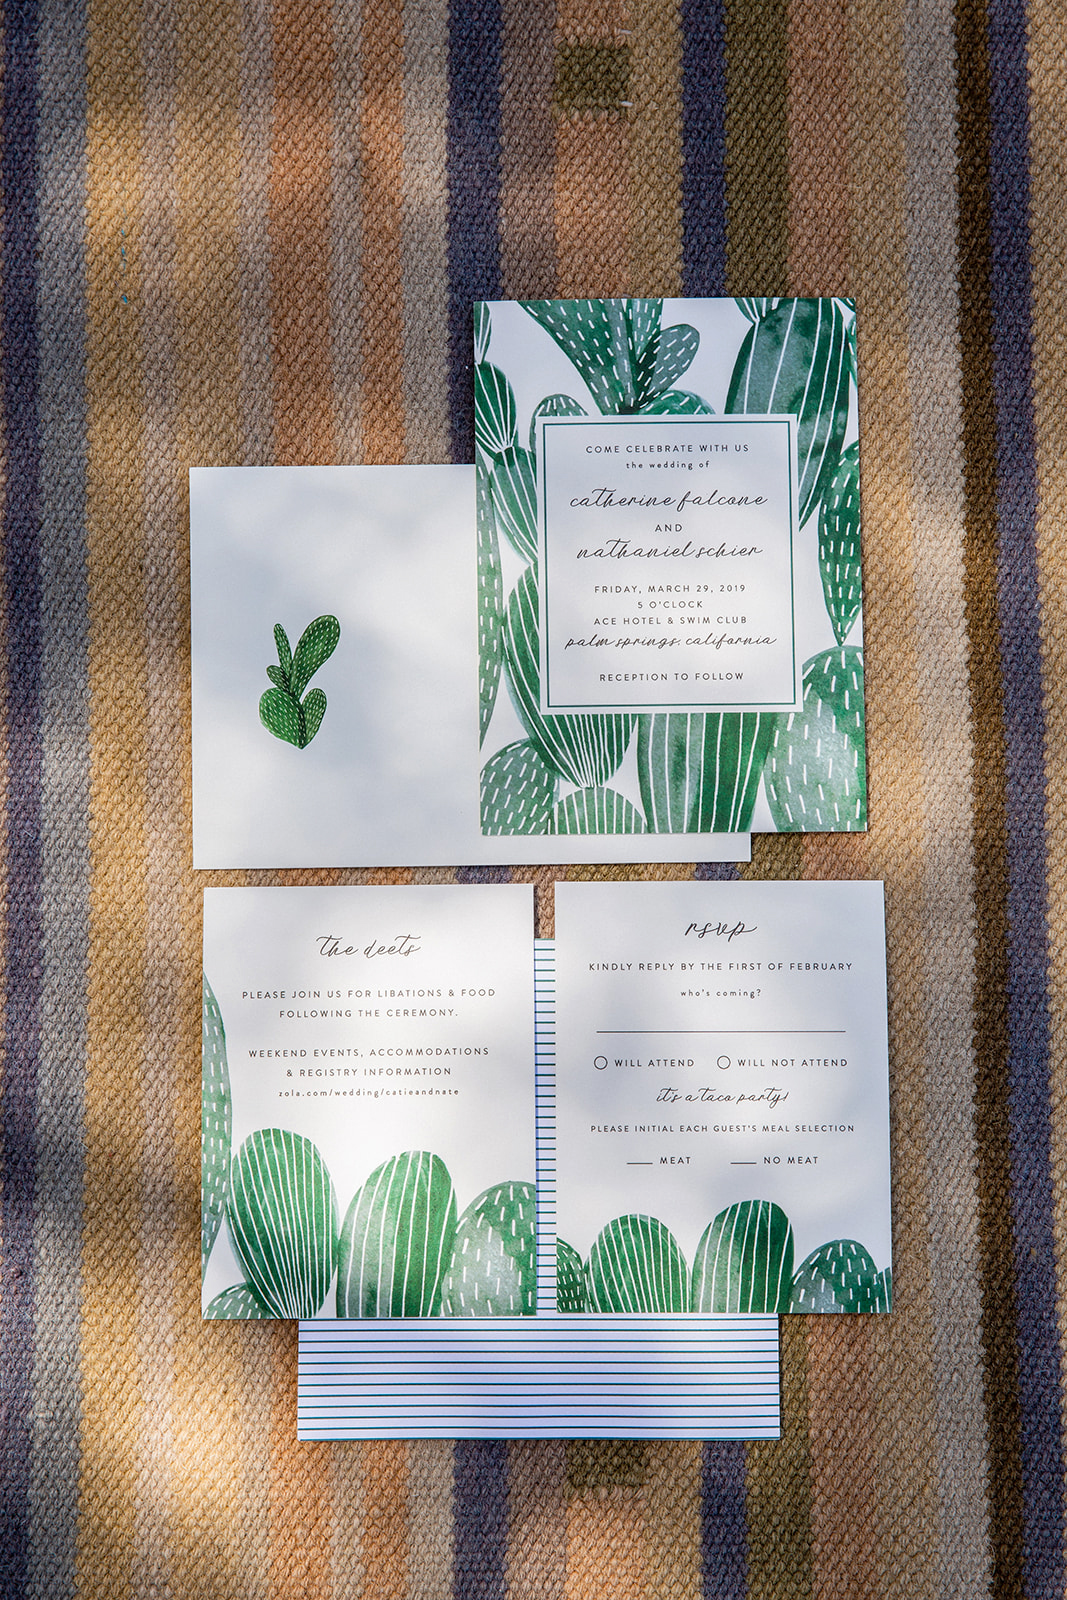 Ace Palm Springs Wedding